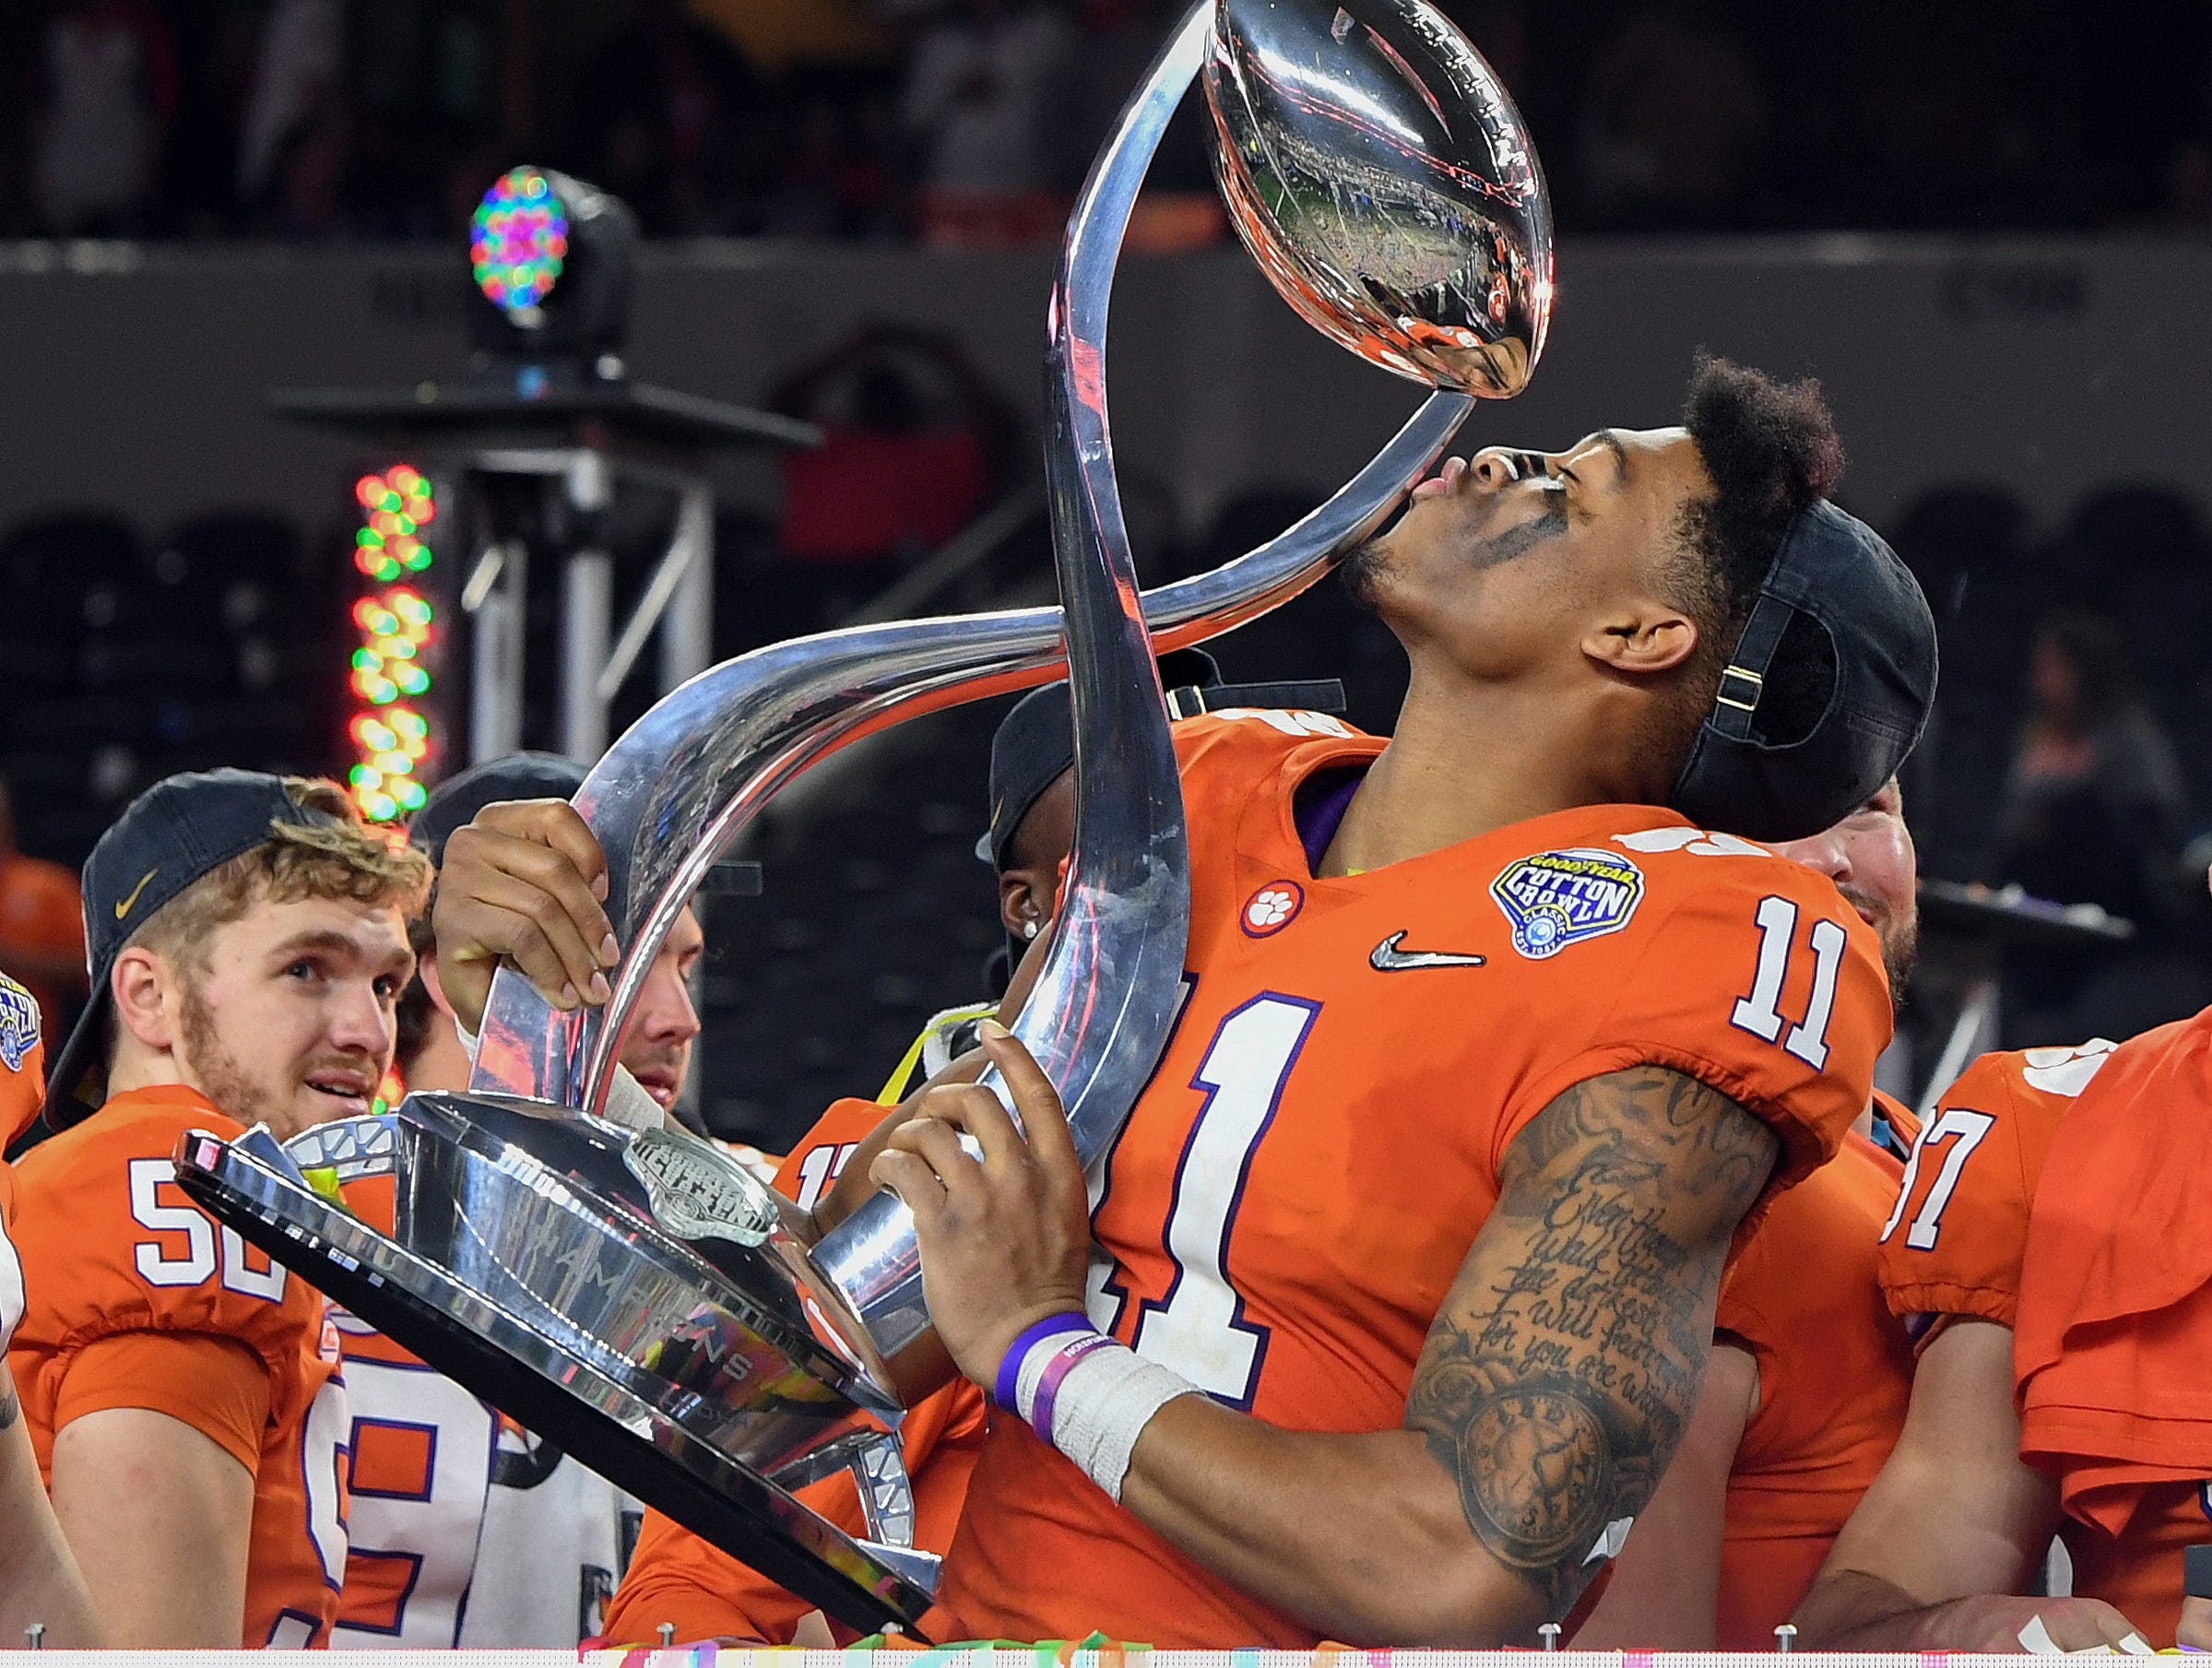 Clemson safety Isaiah Simmons (11) kisses the Goodyear Cotton Bowl trophy after the Tigers 30-3 win over Notre Dame at AT&T stadium in Arlington, TX Saturday, December 29, 2018.